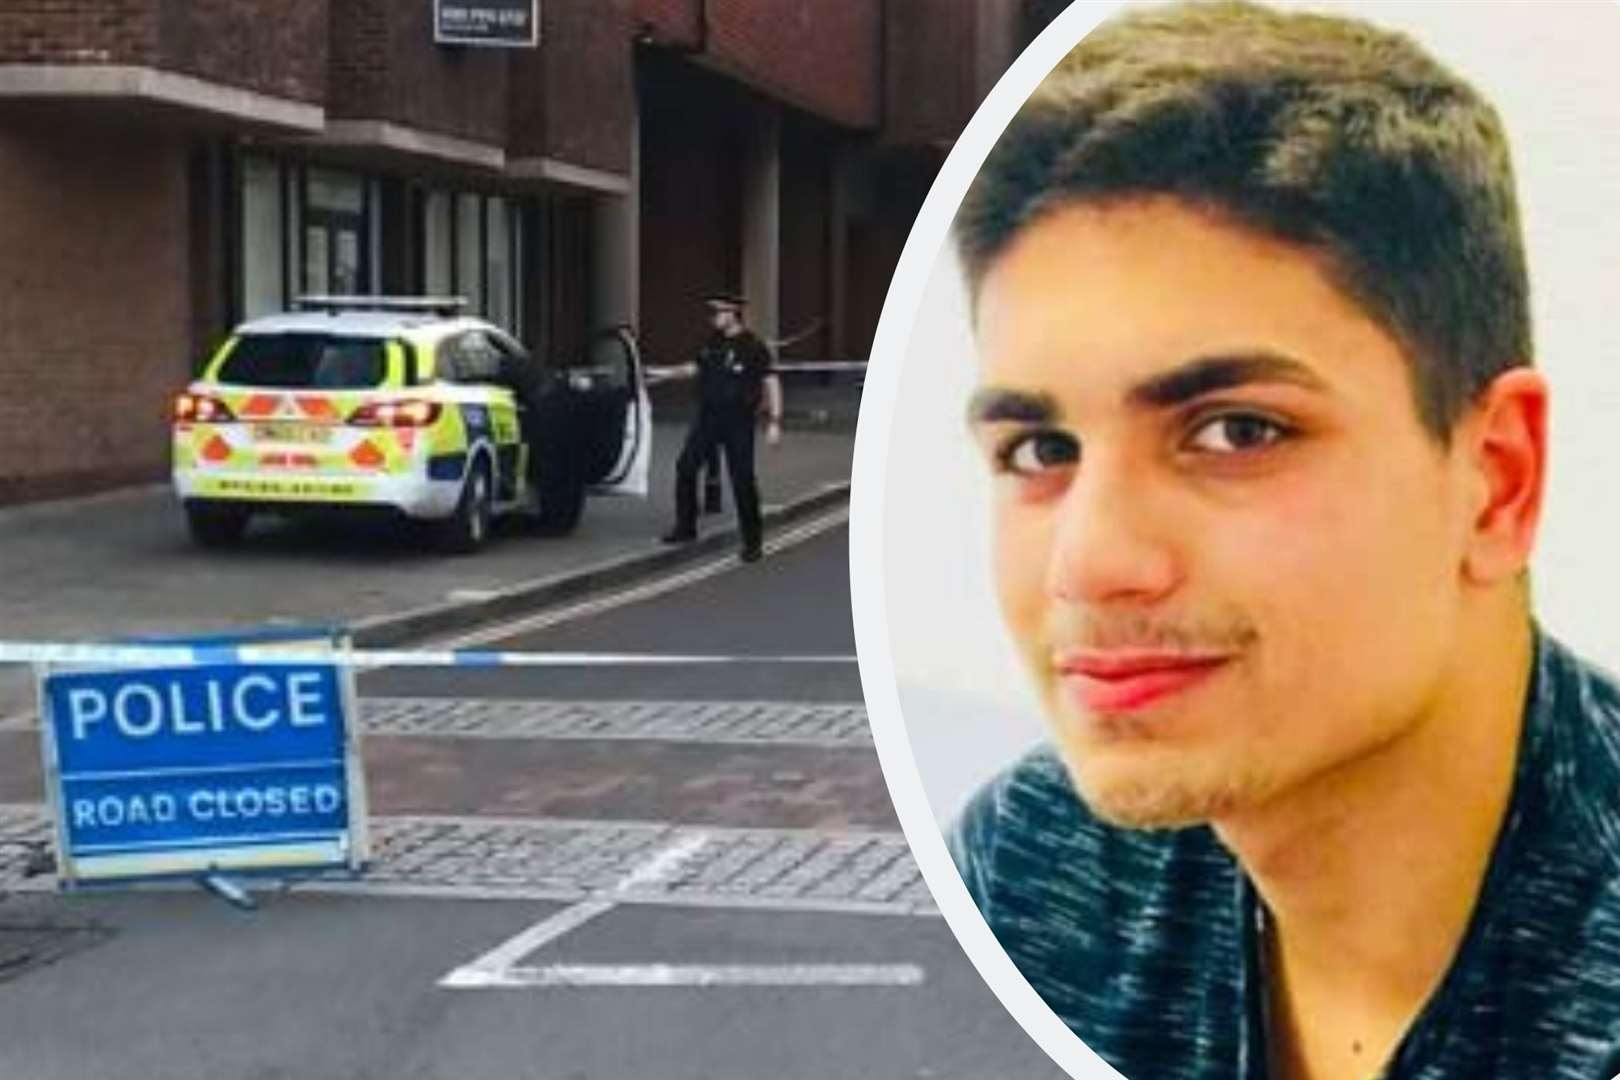 Police cordoned off Rose Lane following the attack on Daniel Ezzedine, pictured before the 2019 attack